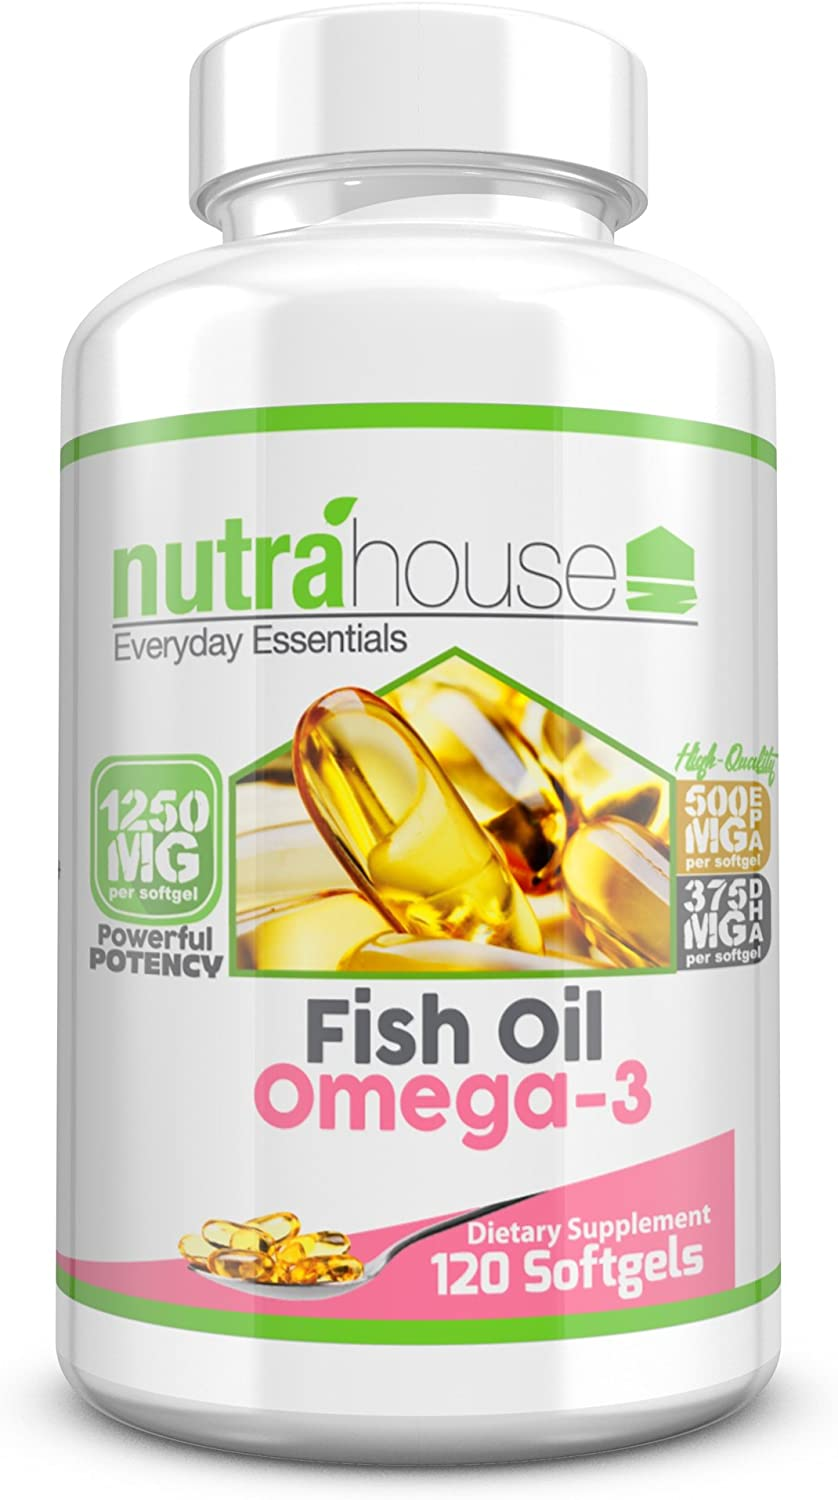 Fish Oil Omega 3 1250 mg with Powerful EPA & DHA per Individual Softgel   Best Cardiovascular, Cognitive, and Immune Support   120 Count   Fish Oil Omega-3 by NutraHouse